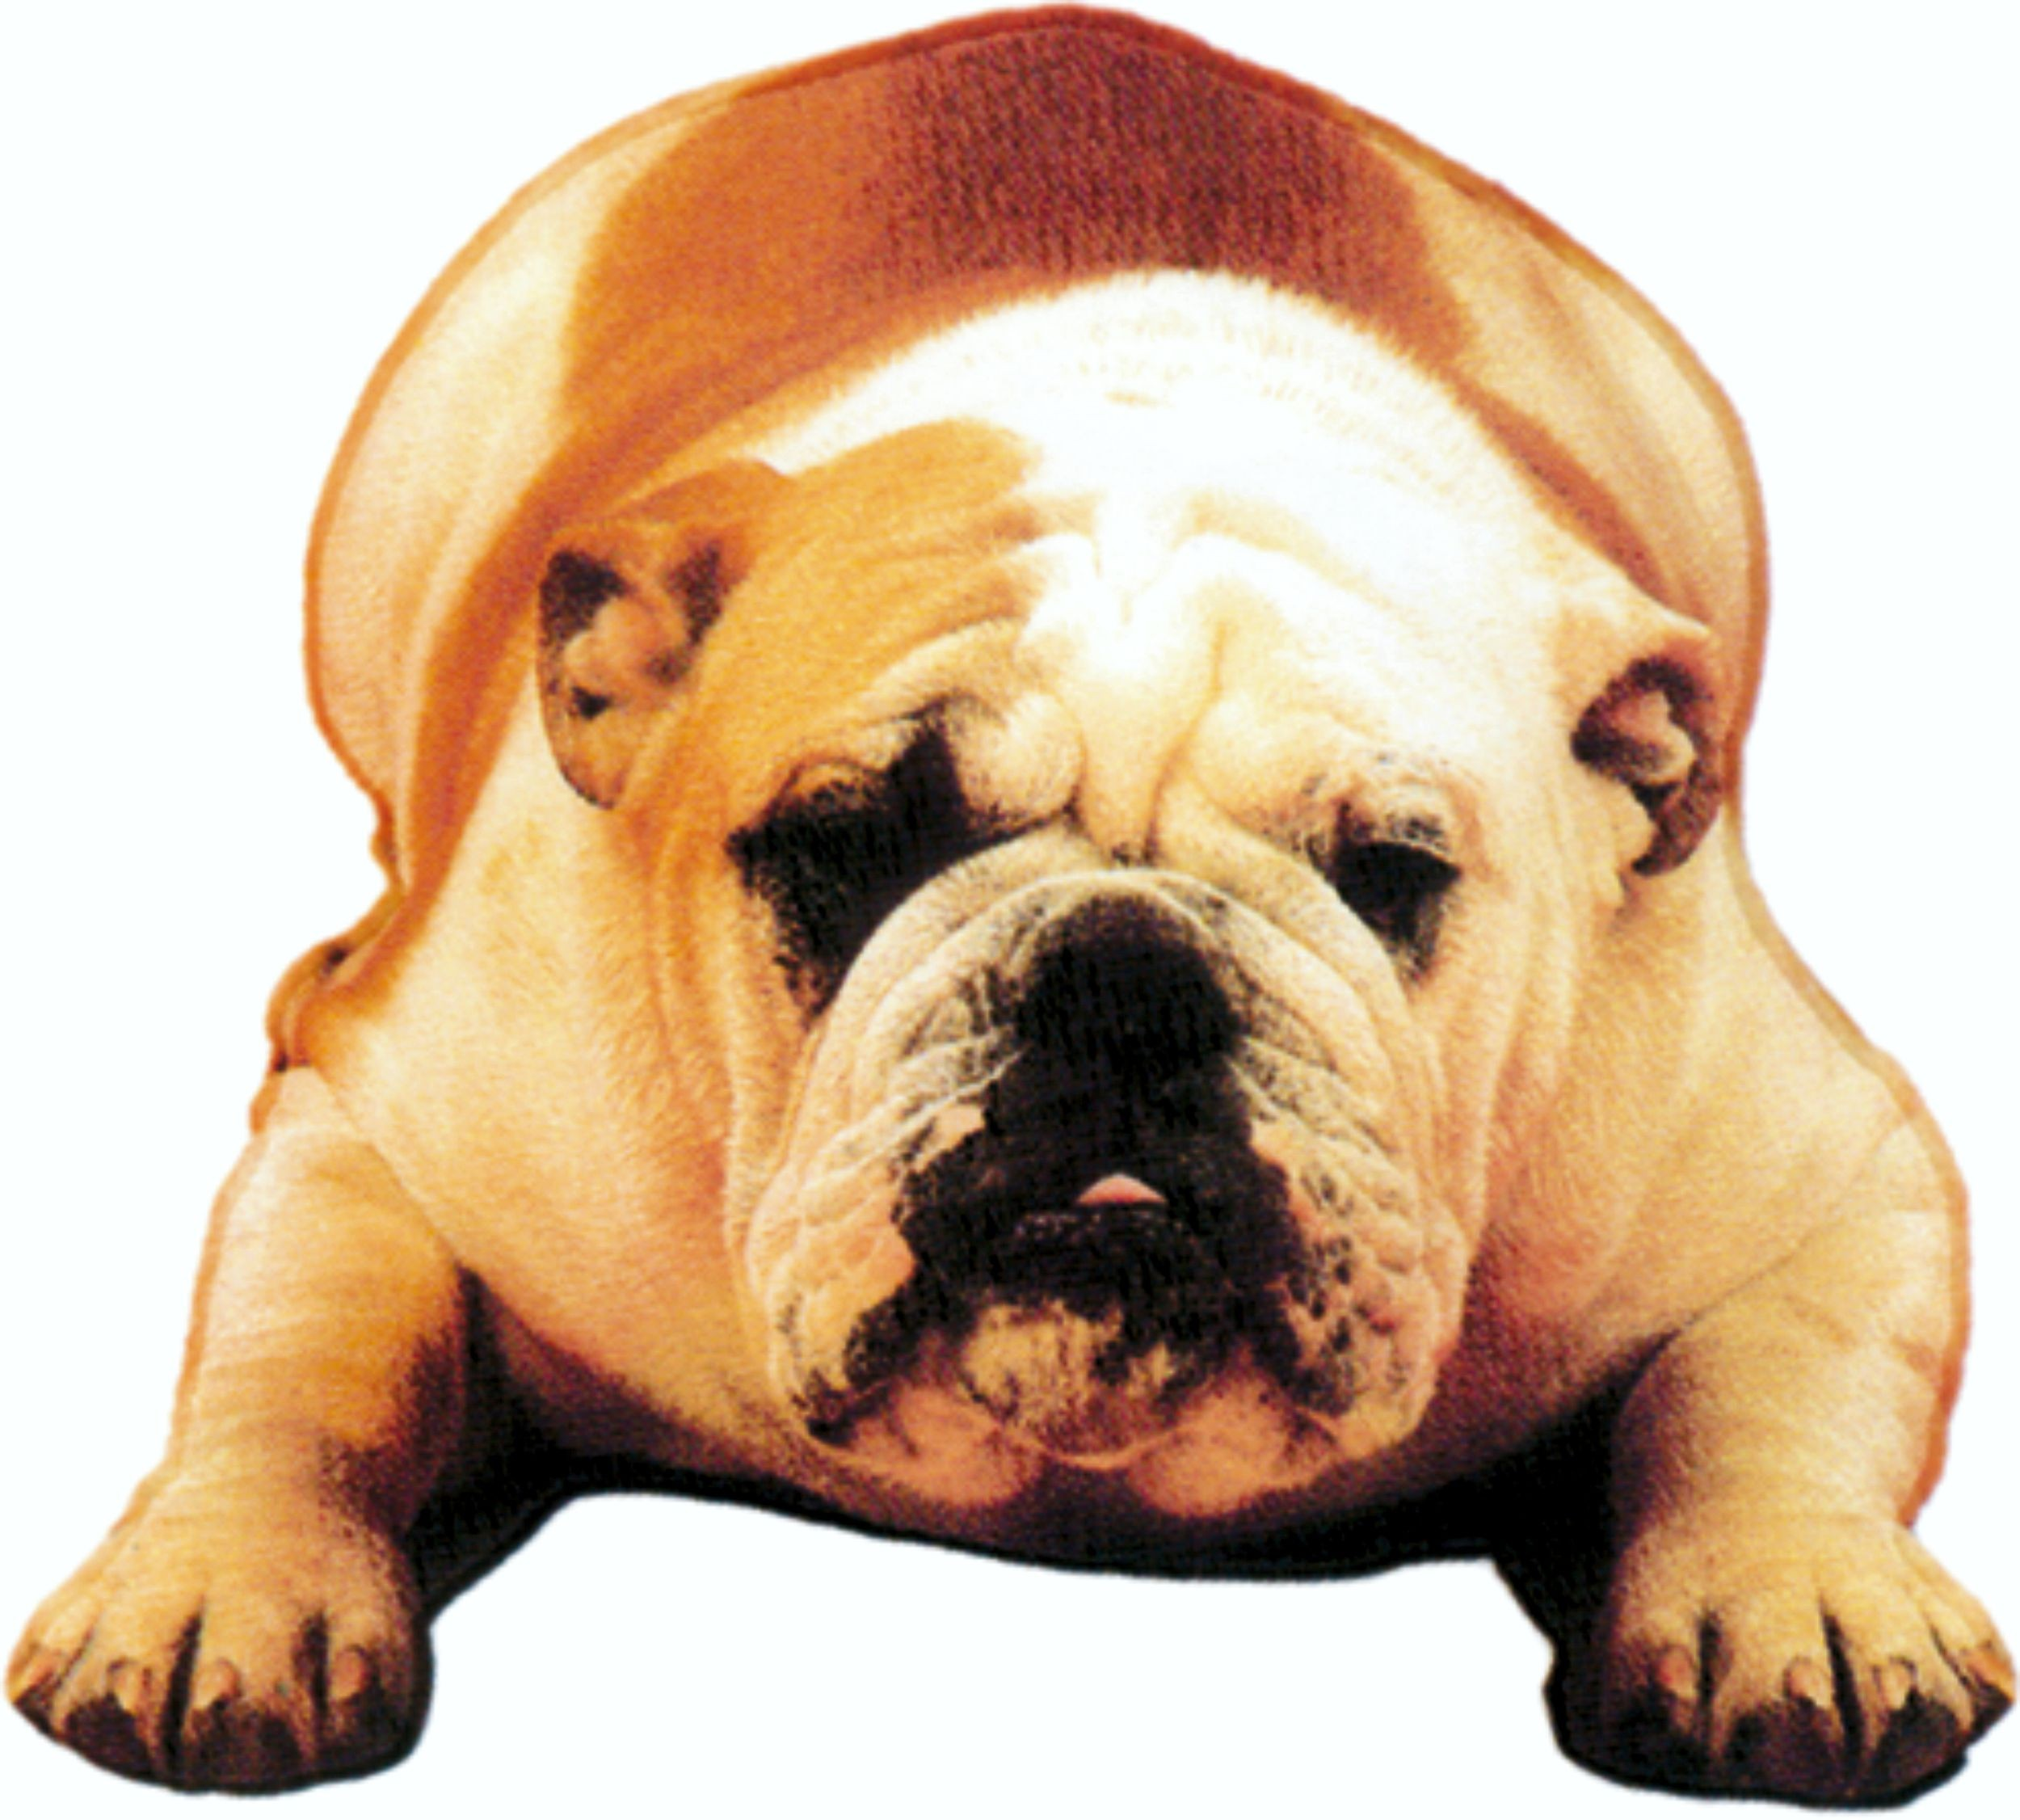 Sticker bulldog 125 x 110 mm – Bild 1